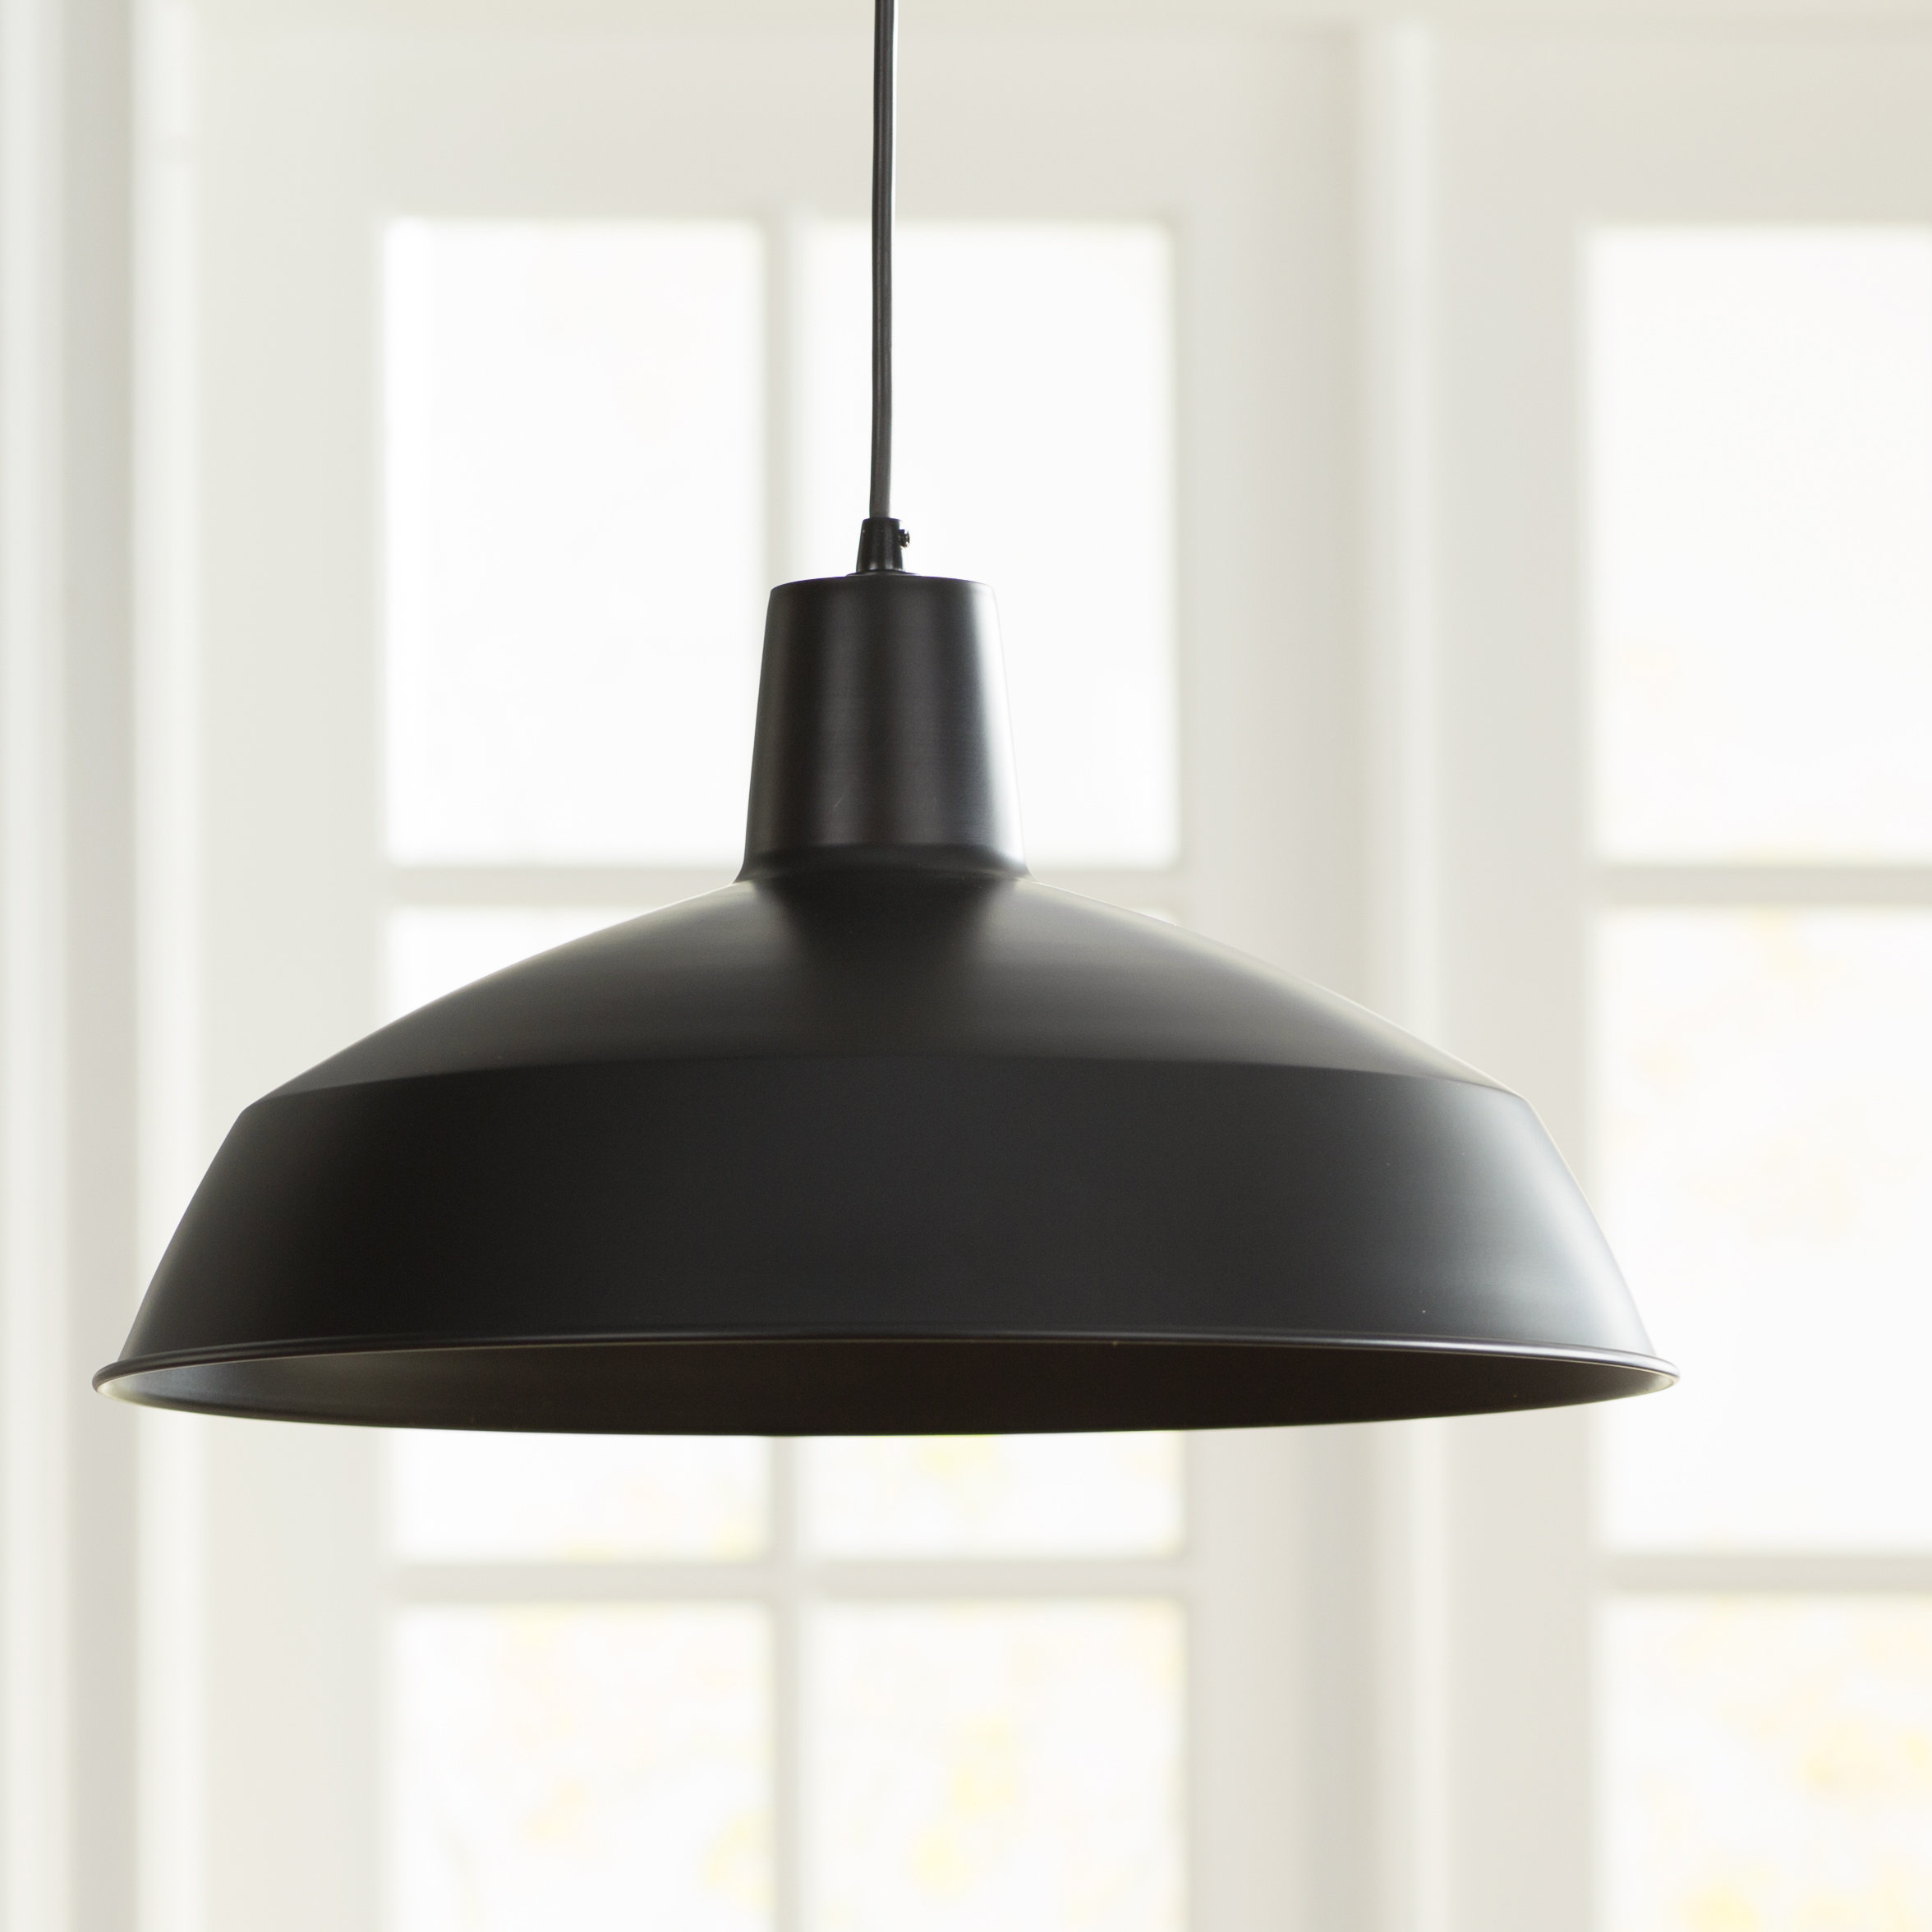 Adrianna 1 Light Single Dome Pendant Within Bryker 1 Light Single Bulb Pendants (View 10 of 30)